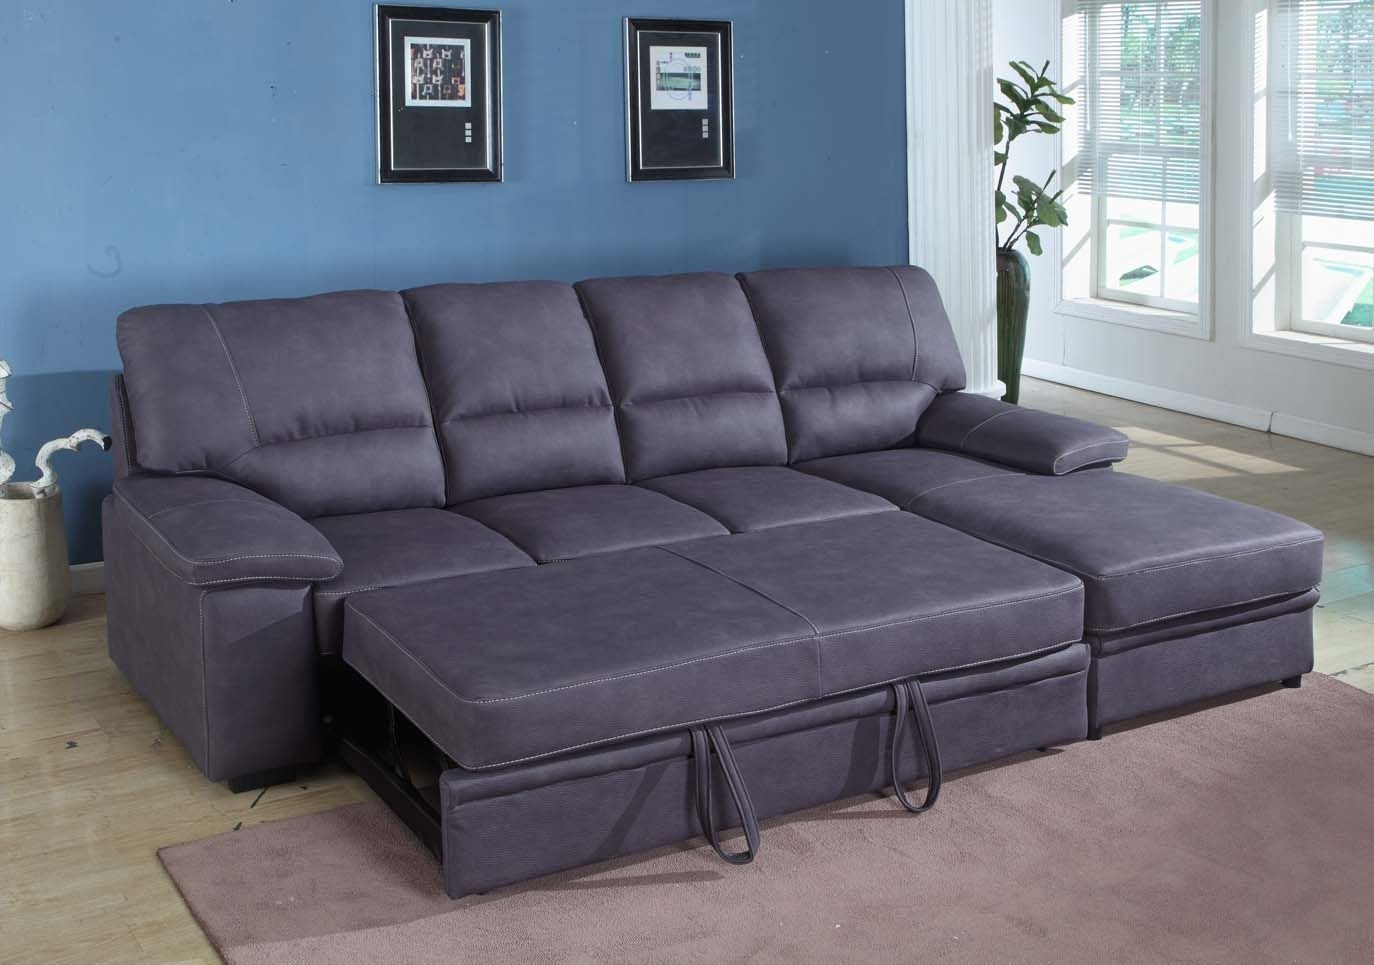 Unbelievable Grey Sleeper Sectional Sofa Houston Mattress King Of Intended For Philadelphia Sectional Sofas (Image 10 of 10)